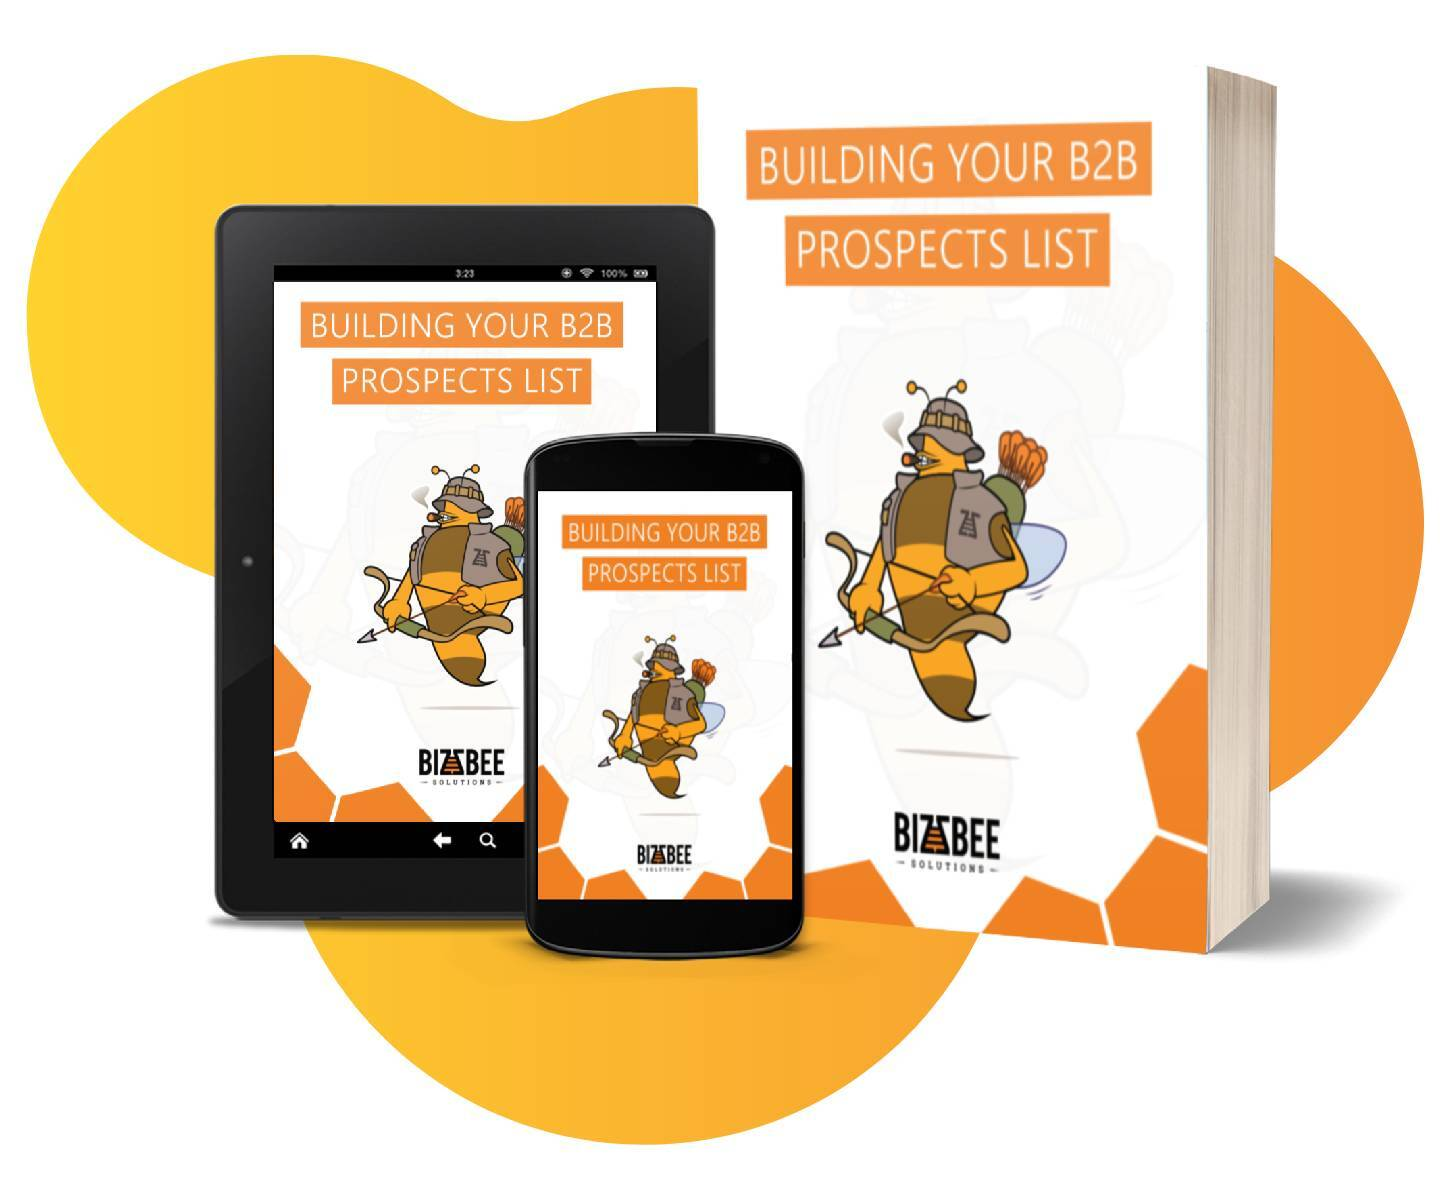 Building your b2b prospects list ebook cover mockups on a tablet, smartphone, and physical book.